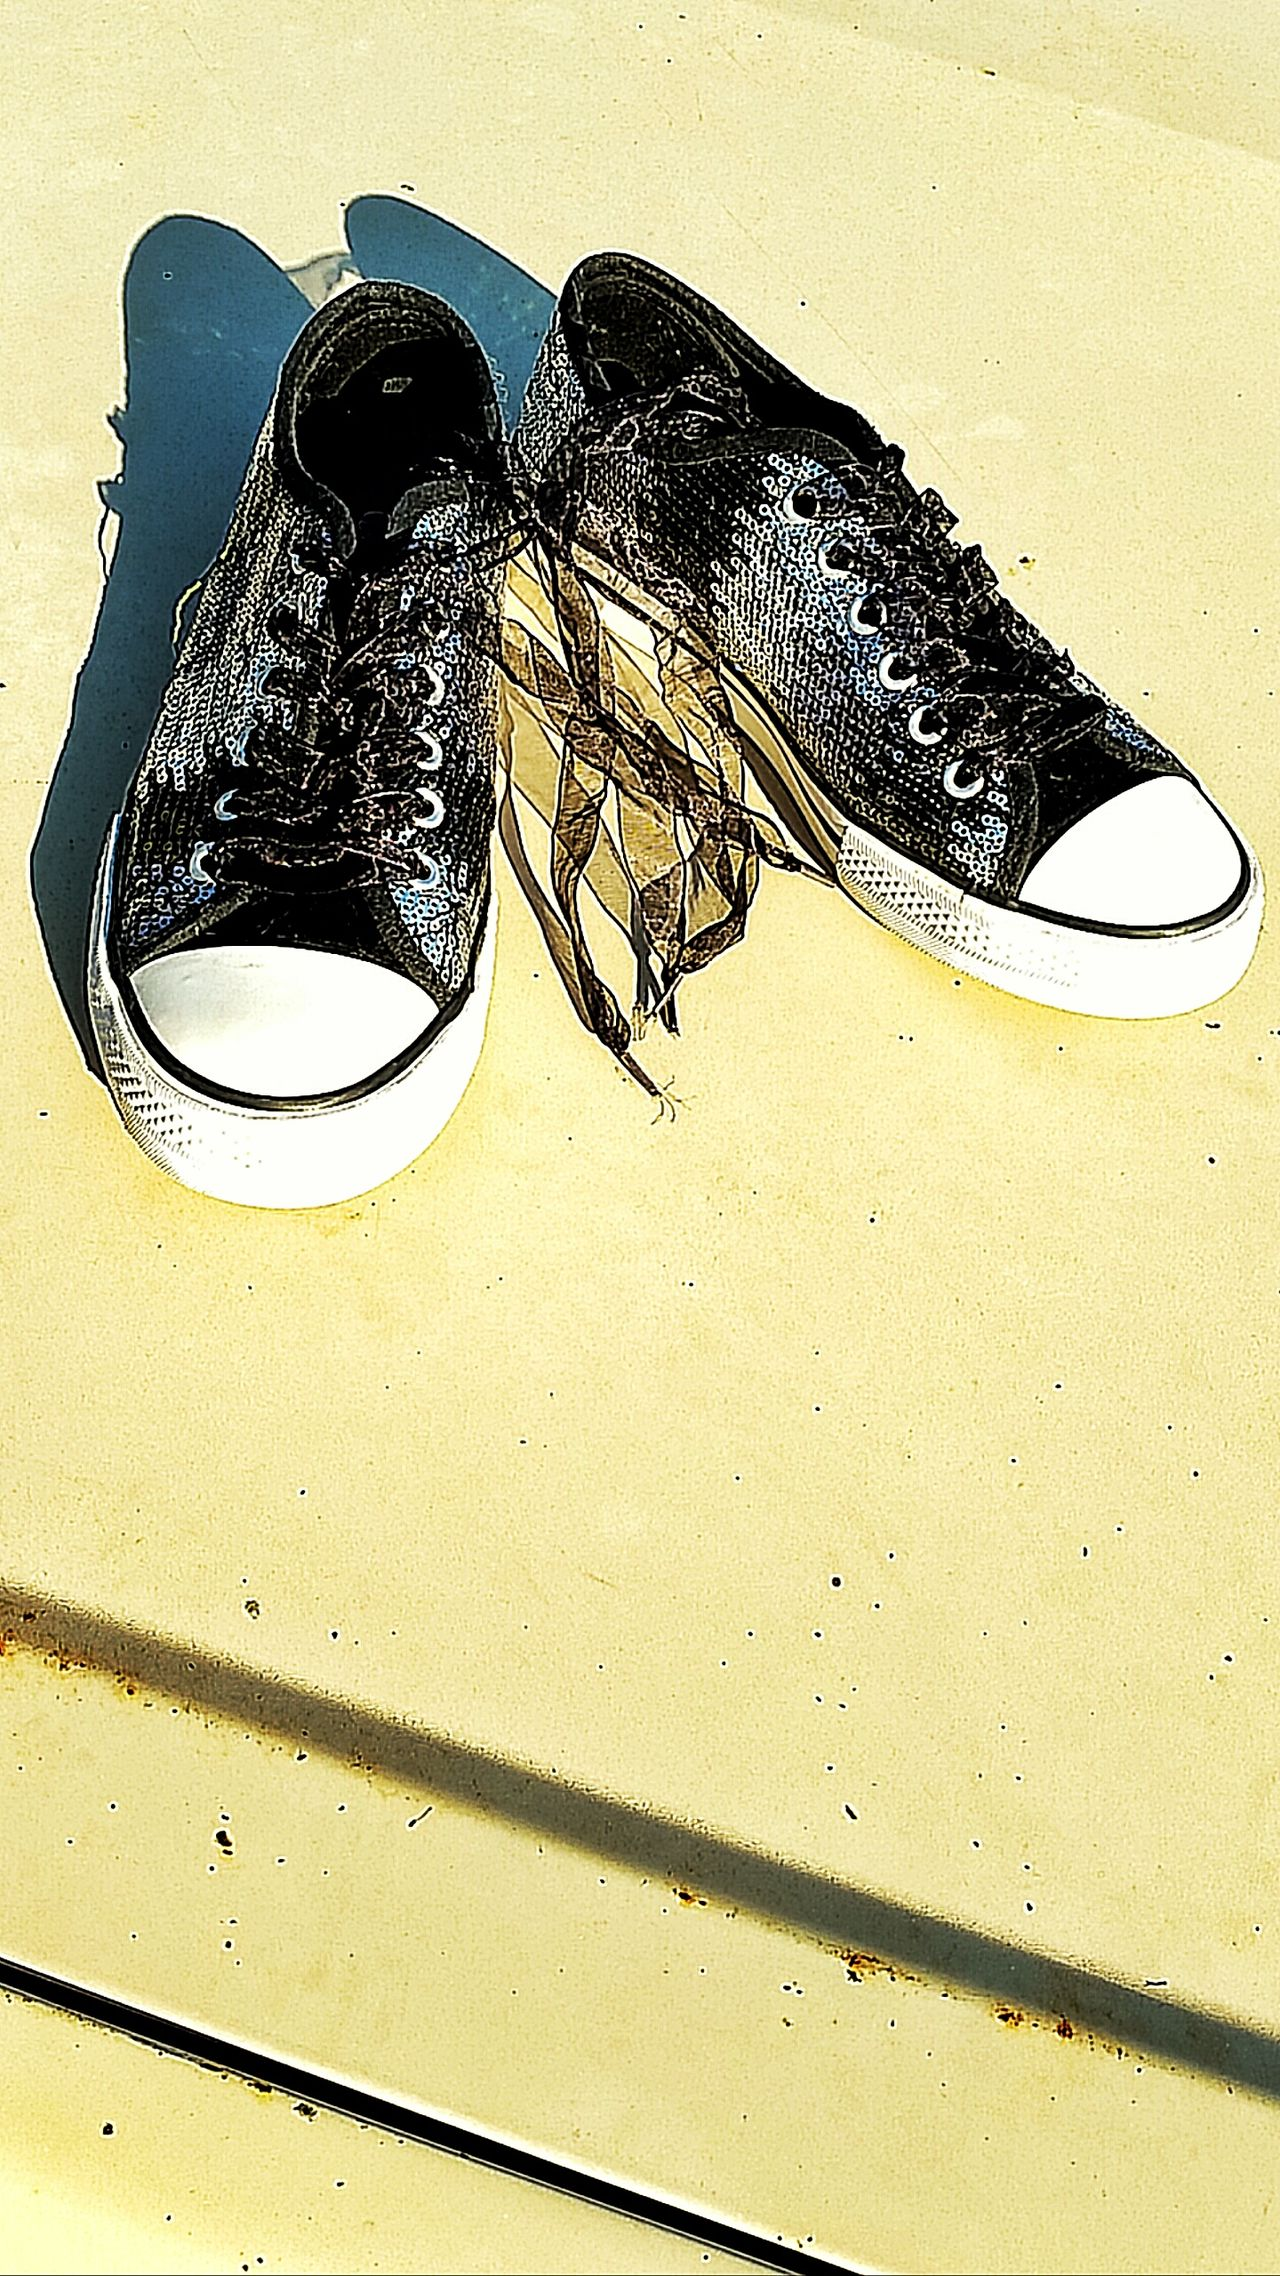 Fashion Pattern Close-up Pair Shoes Pair Of Shoes Footwear Yellow Background Nature Clothing Shiny Shiny Shoes Shiny Surfaces Glittering Glitter & Sparkle Surface Surface And Texture Textures And Surfaces Outerwear Favorite Favorite Shoes Favorite Things  Silver  Silver Shoes No People Lieblingsteil